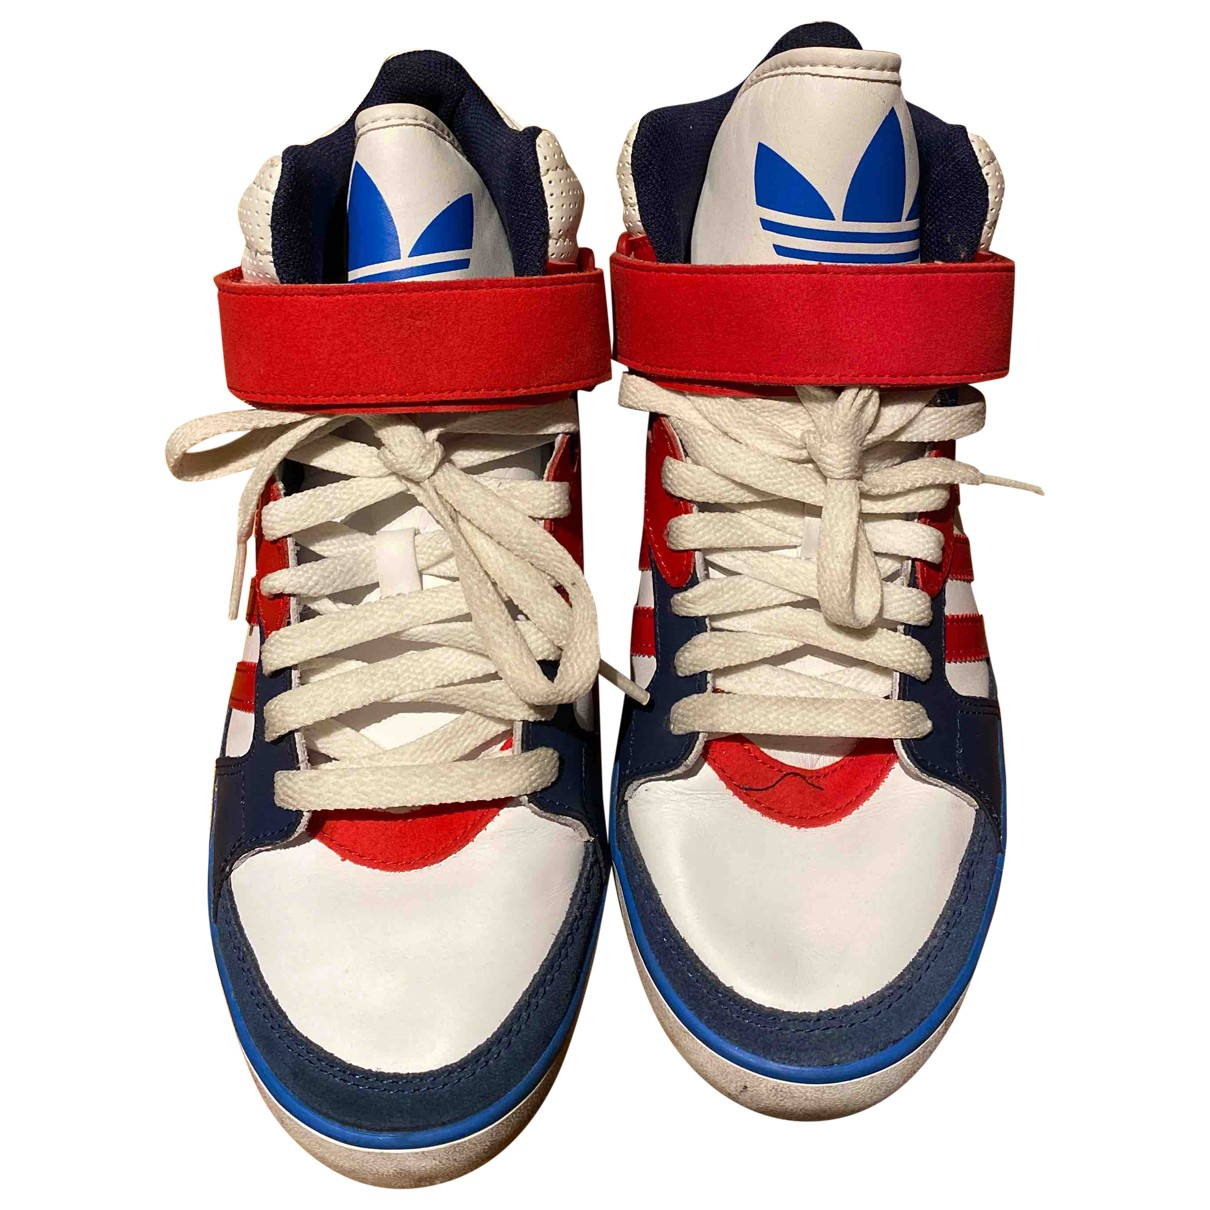 Adidas N Multicolour Leather Trainers for Women 7 US